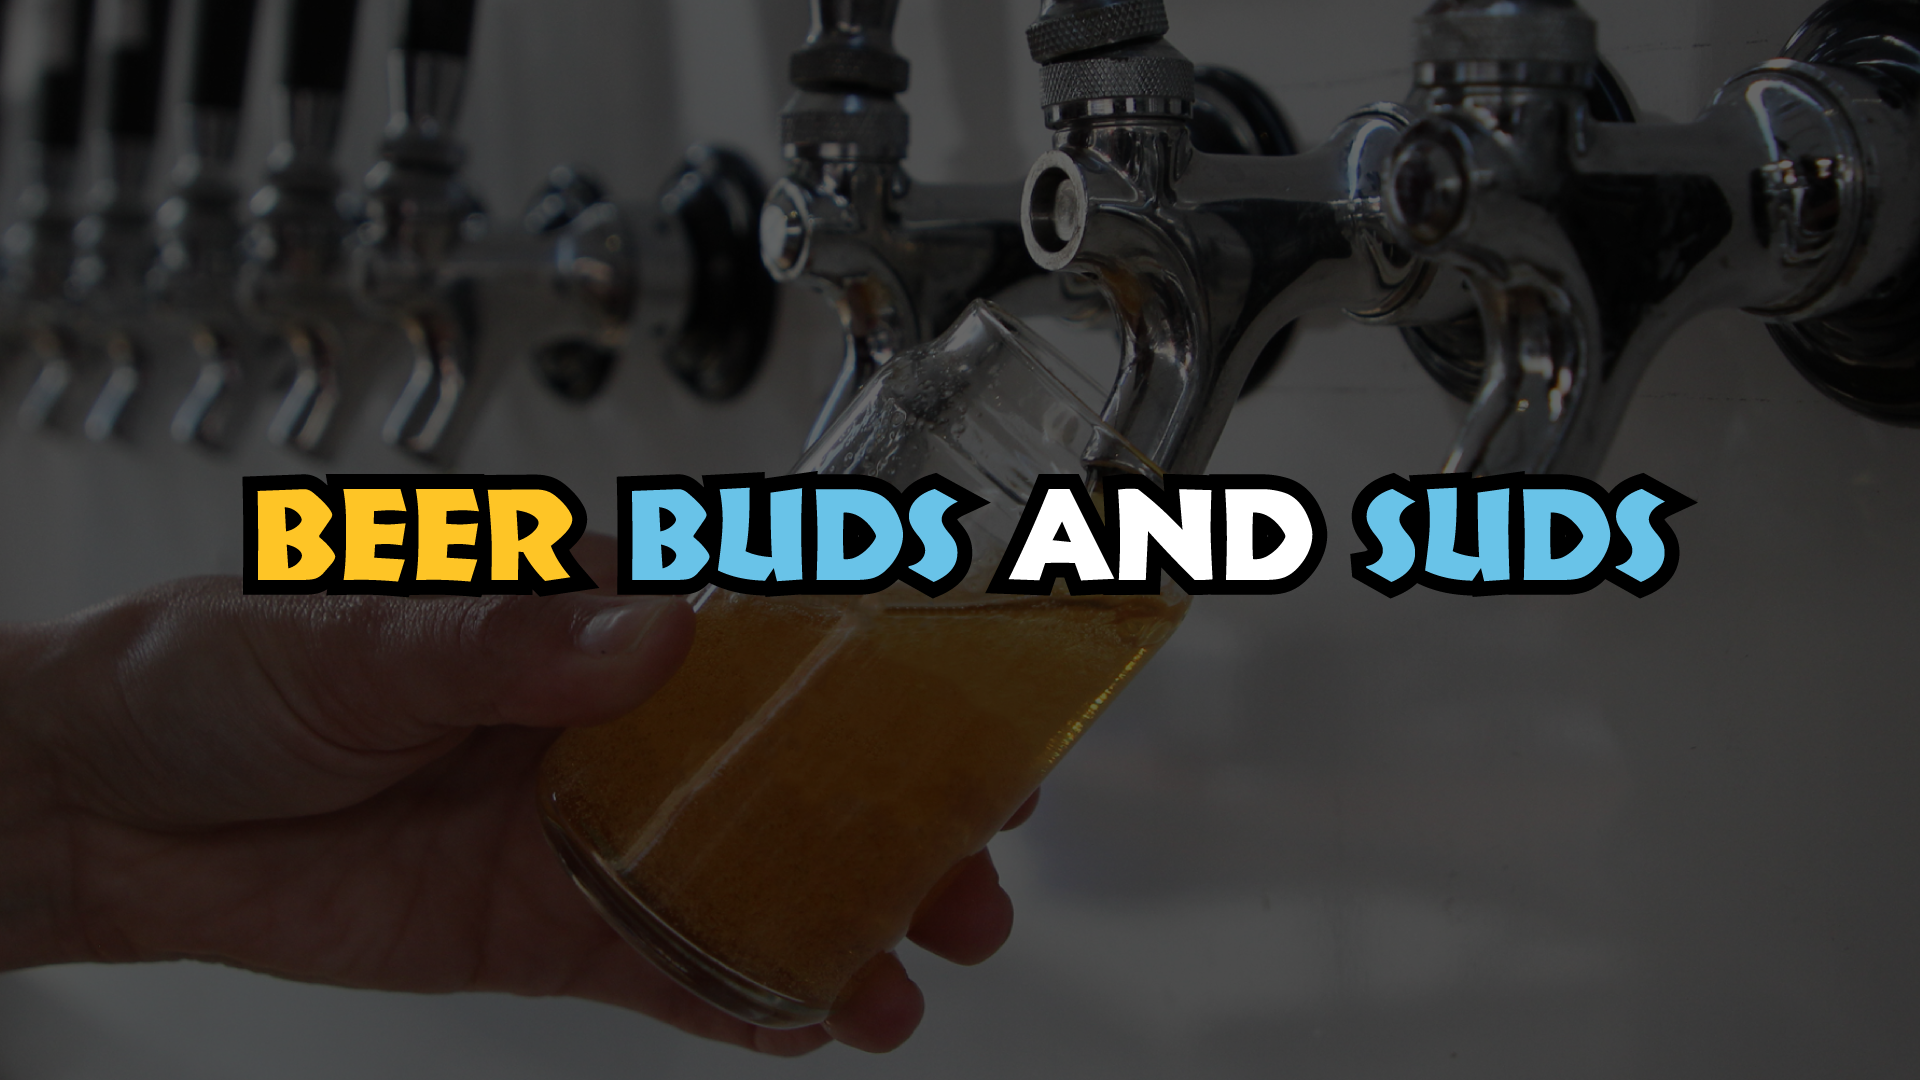 Beer Buds and Suds